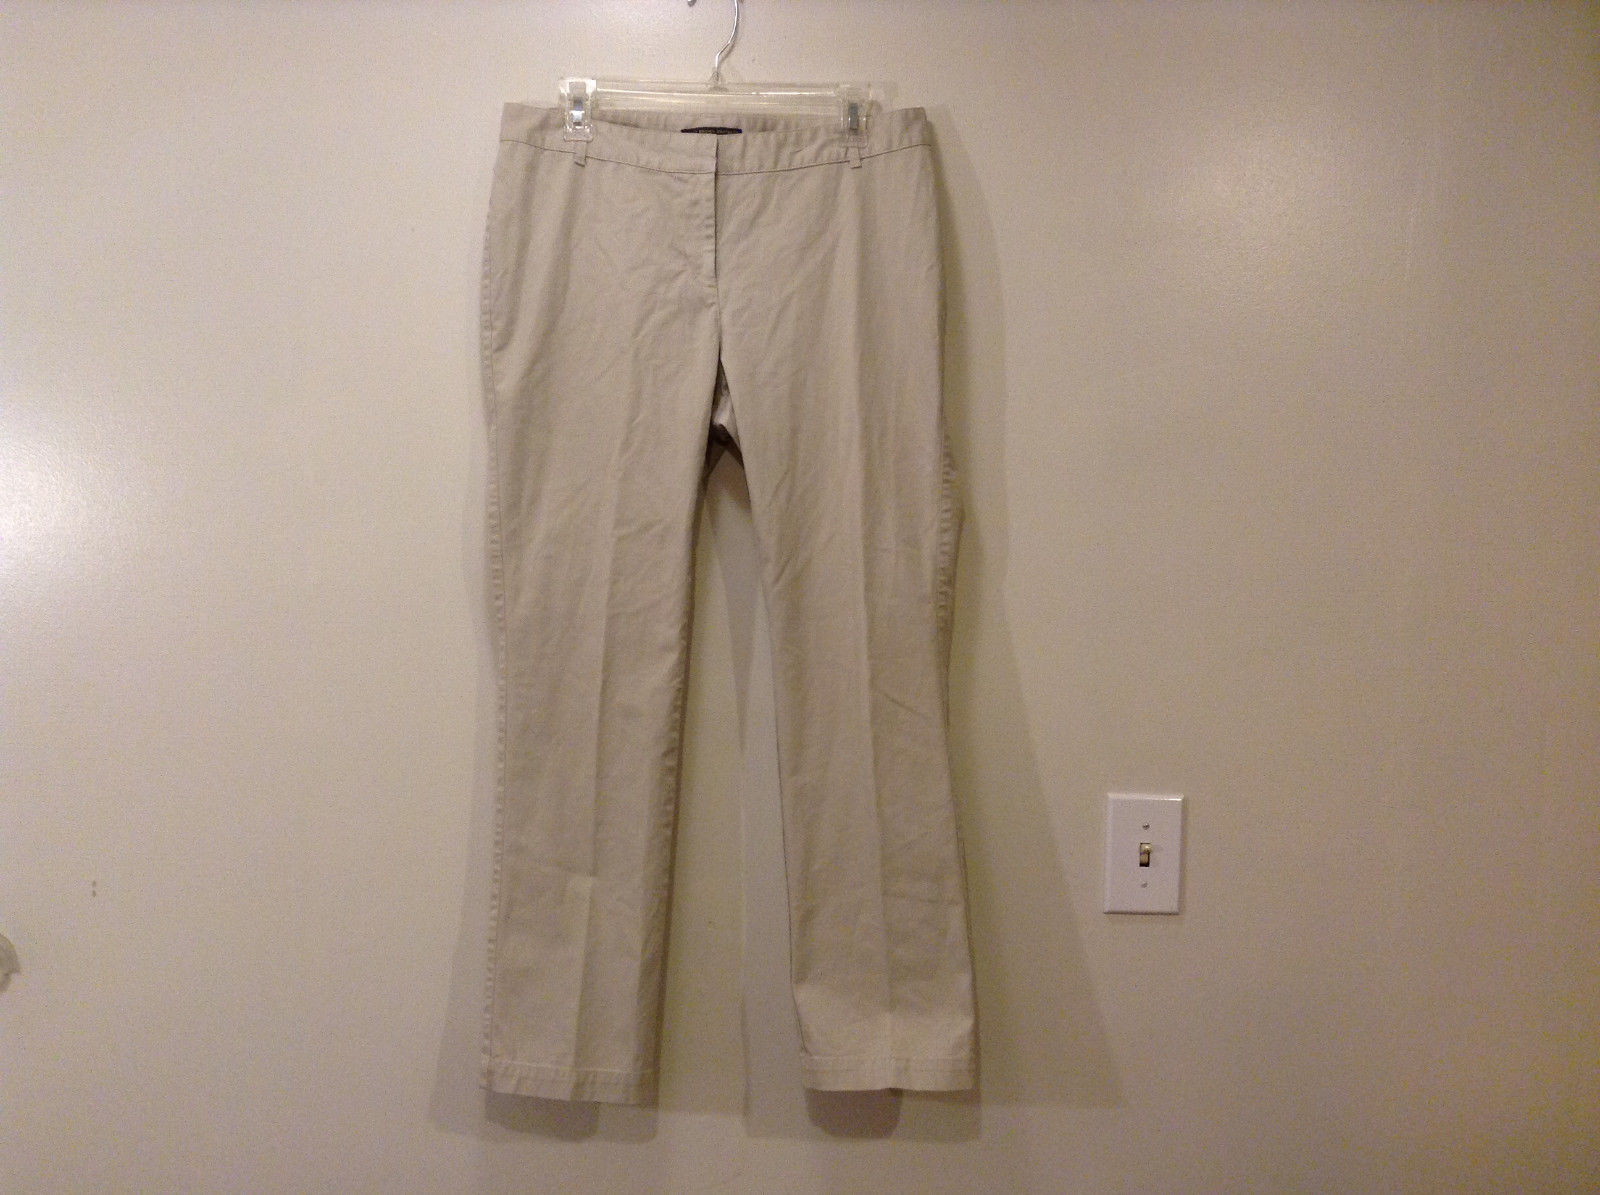 Brooks Brothers Ladies Milano Fit Size 10 Khaki Gray Pants Cotton Spandex